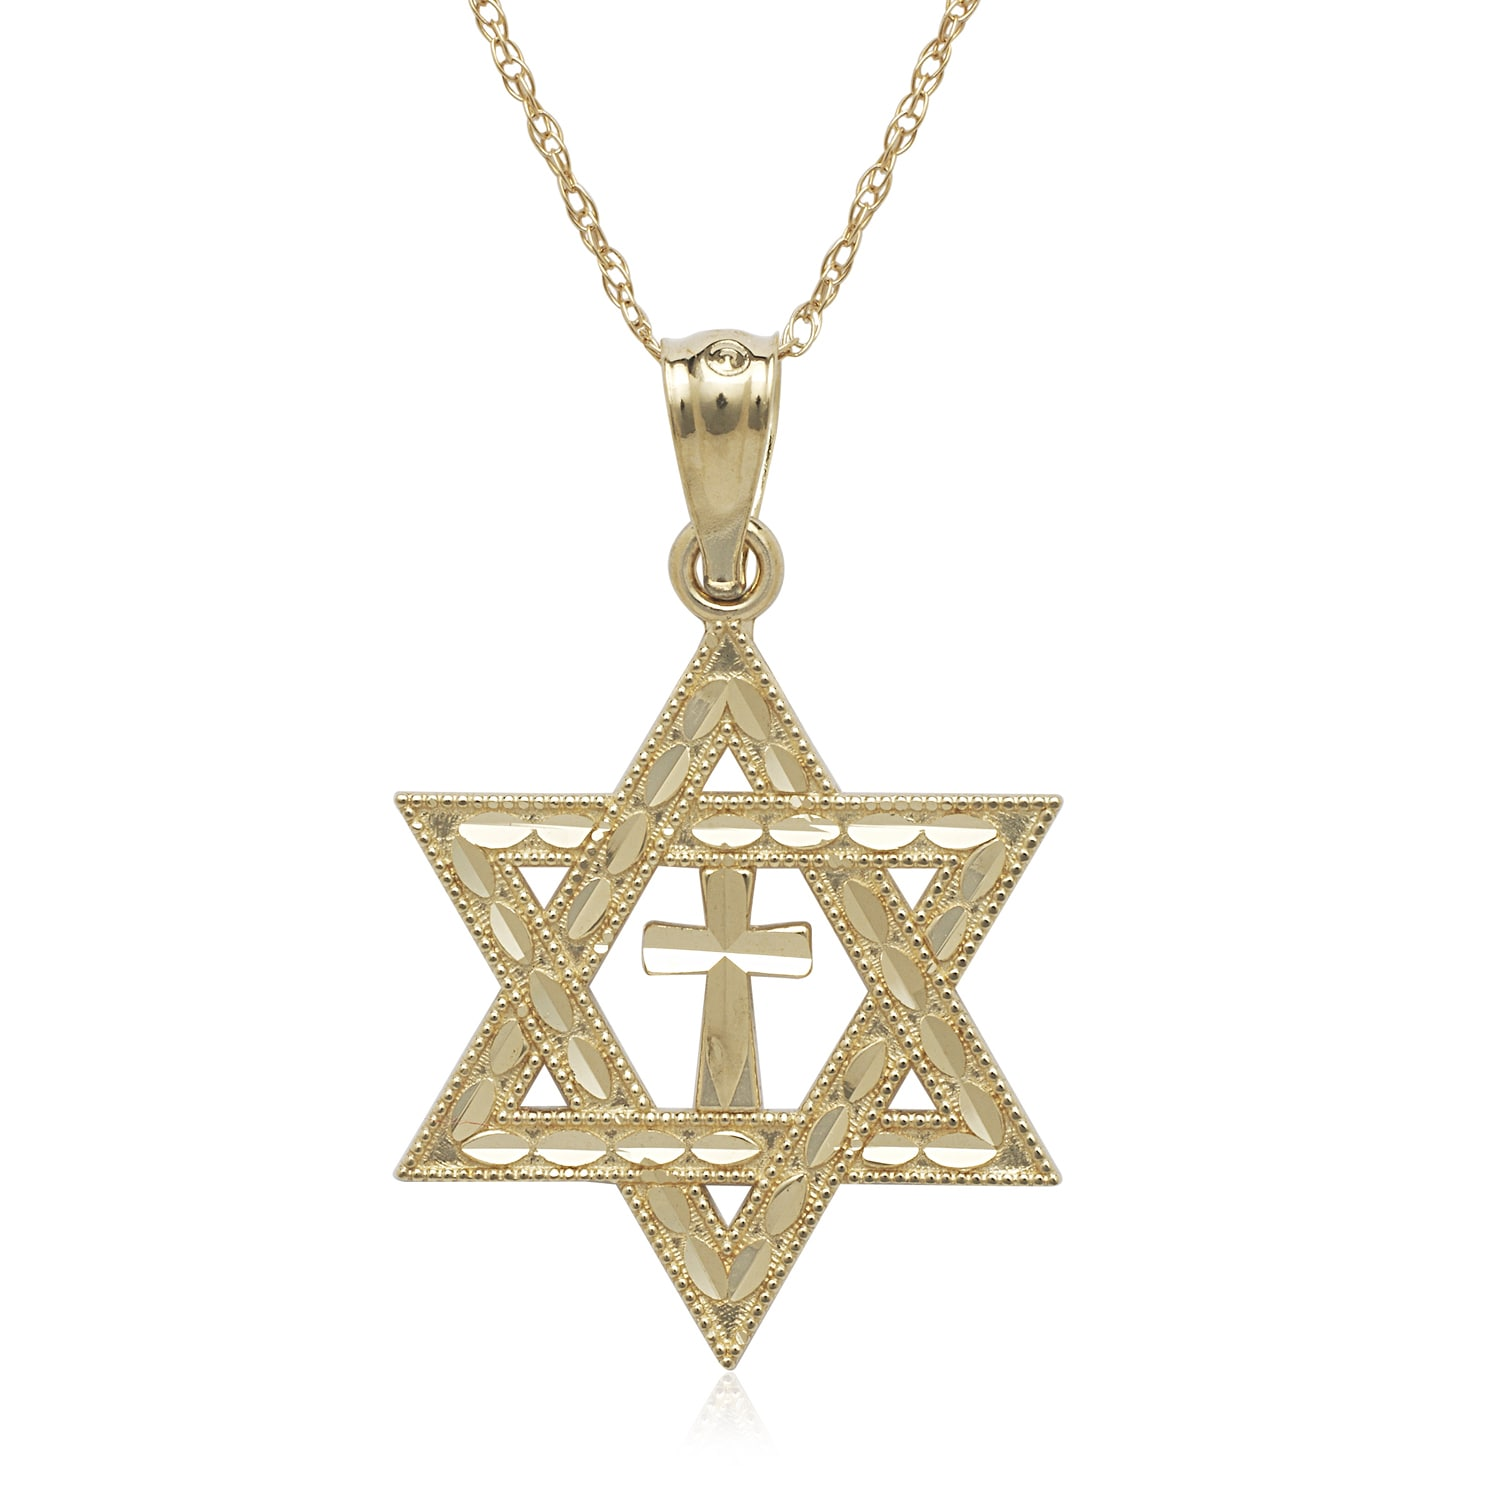 Shop 14k yellow gold diamond cut star of david cross 16 inch shop 14k yellow gold diamond cut star of david cross 16 inch necklace on sale free shipping today overstock 10290392 aloadofball Gallery